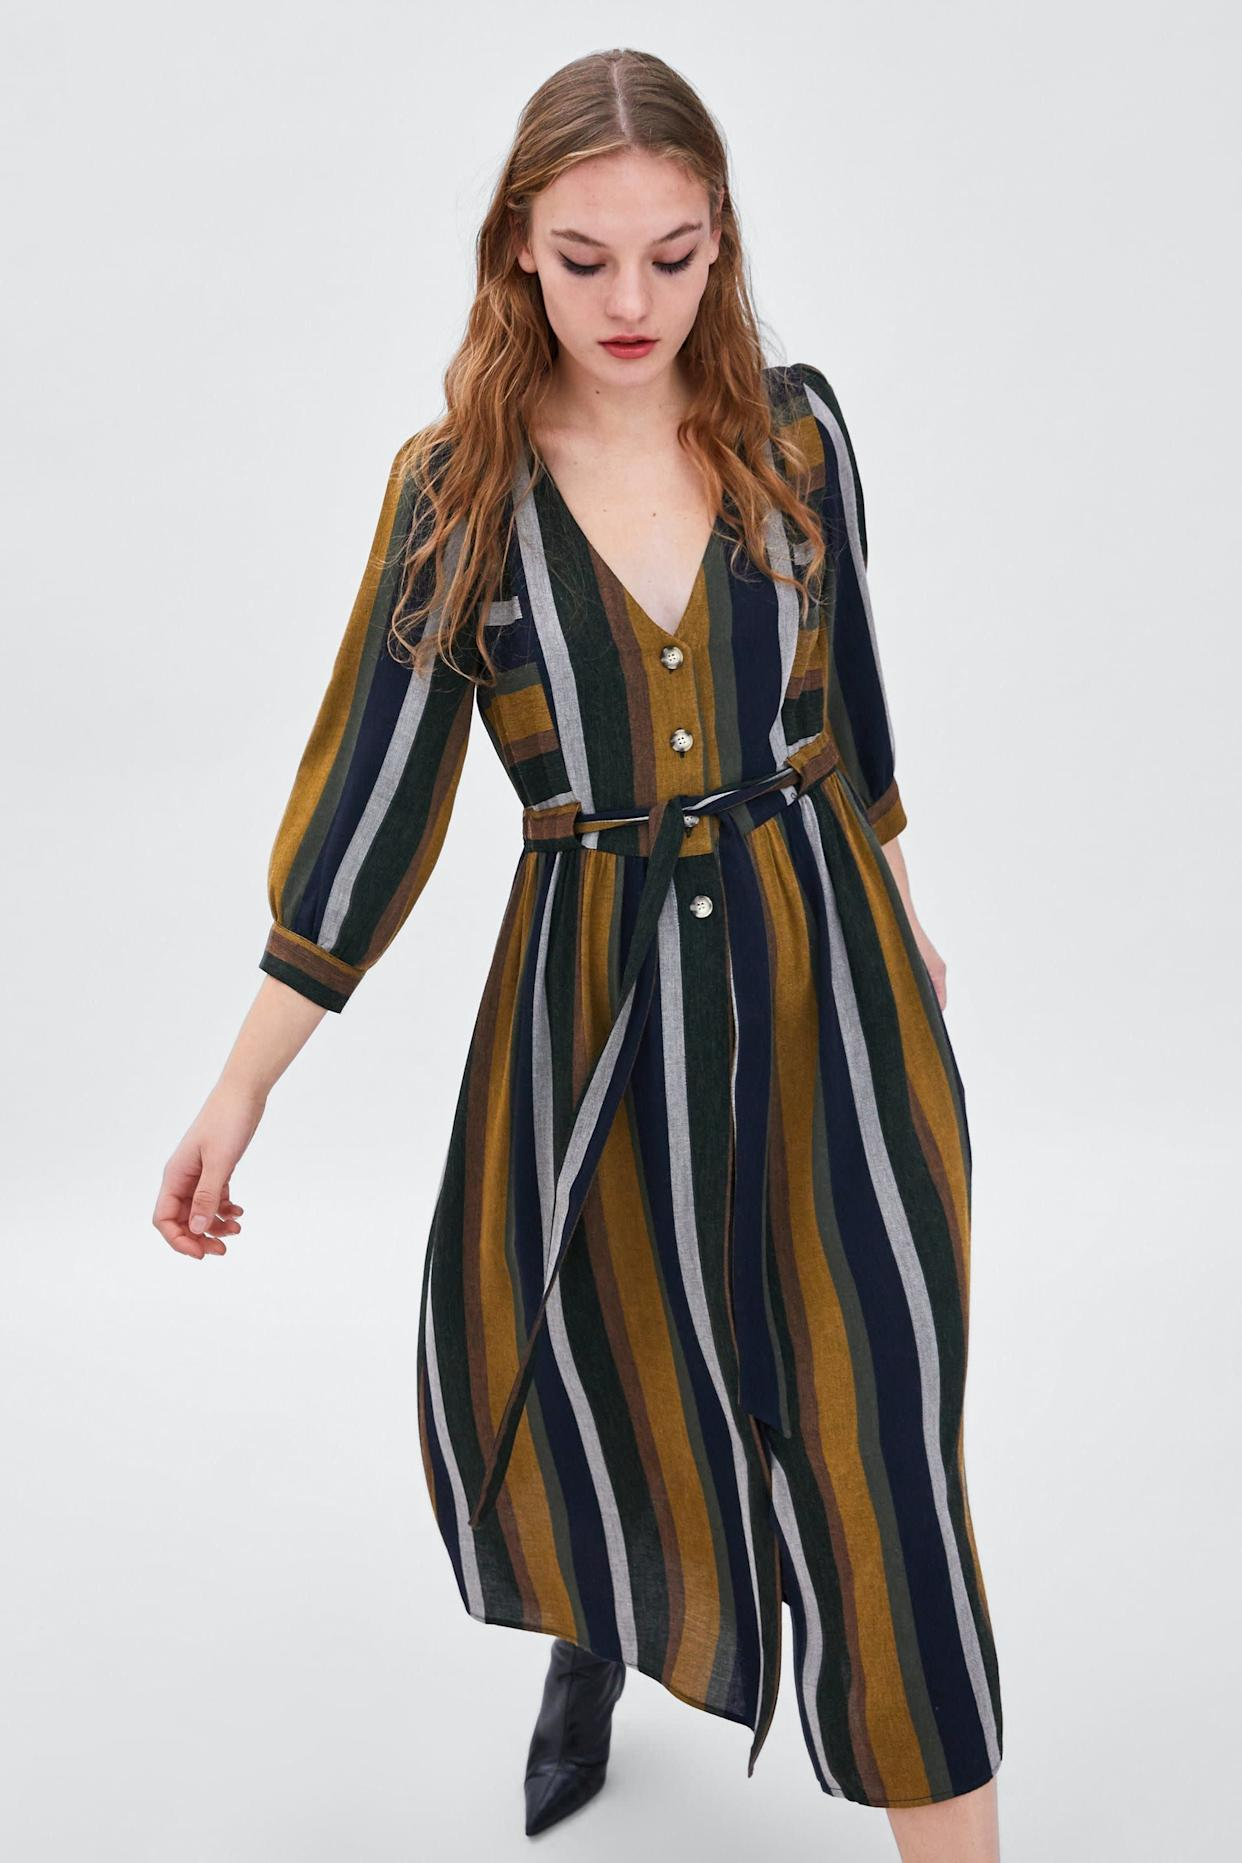 "<strong><a href=""https://www.zara.com/us/en/striped-dress-p08034113.html?v1=7686059&amp;v2=1074540"" rel=""nofollow noopener"" target=""_blank"" data-ylk=""slk:Zara striped dress"" class=""link rapid-noclick-resp"">Zara striped dress</a>, $69.90</strong>"